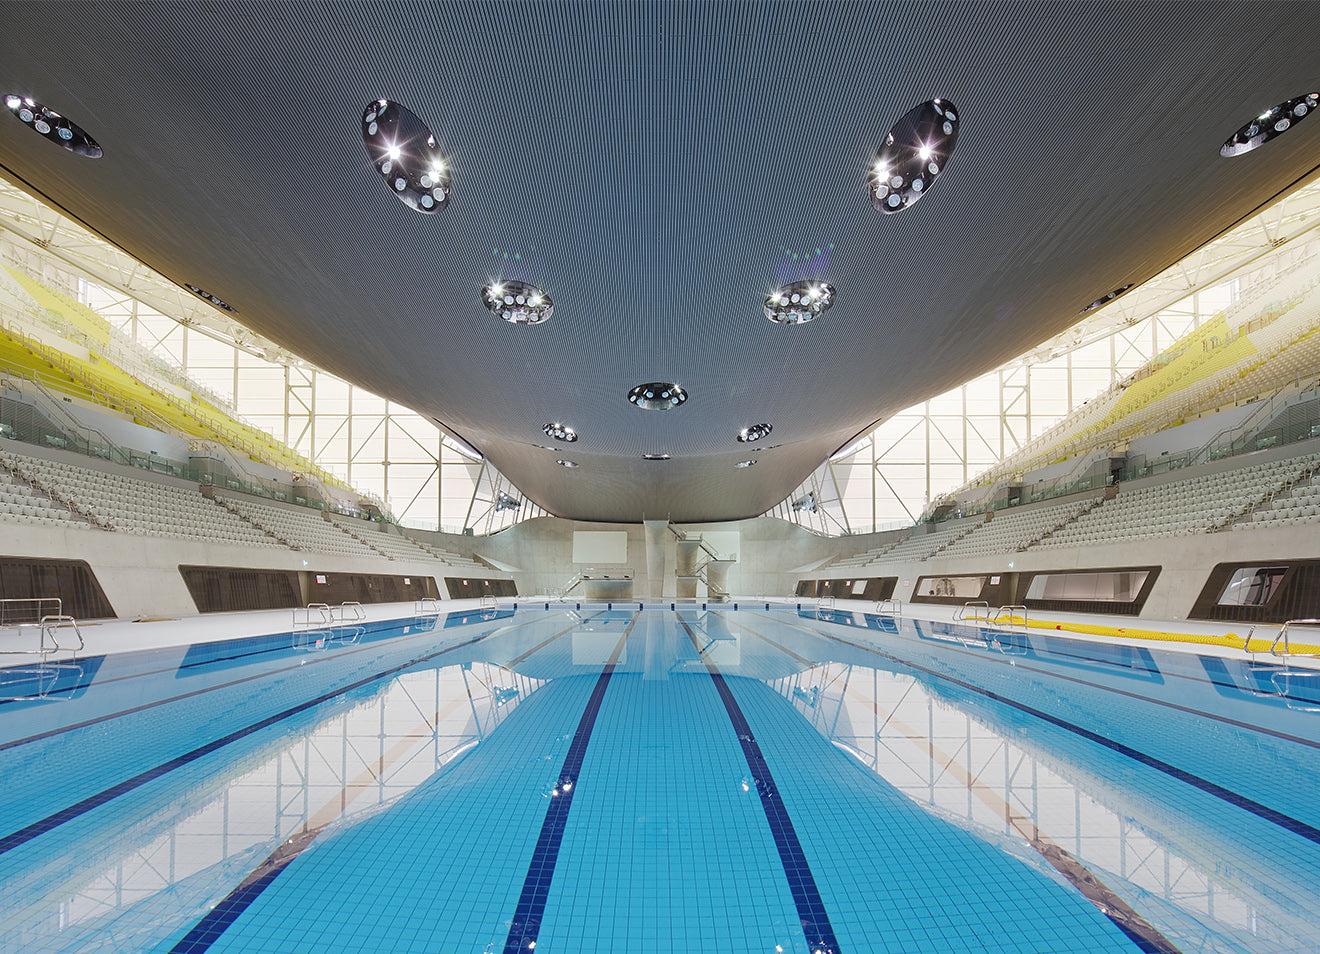 Aquatics centre London during the olympic games